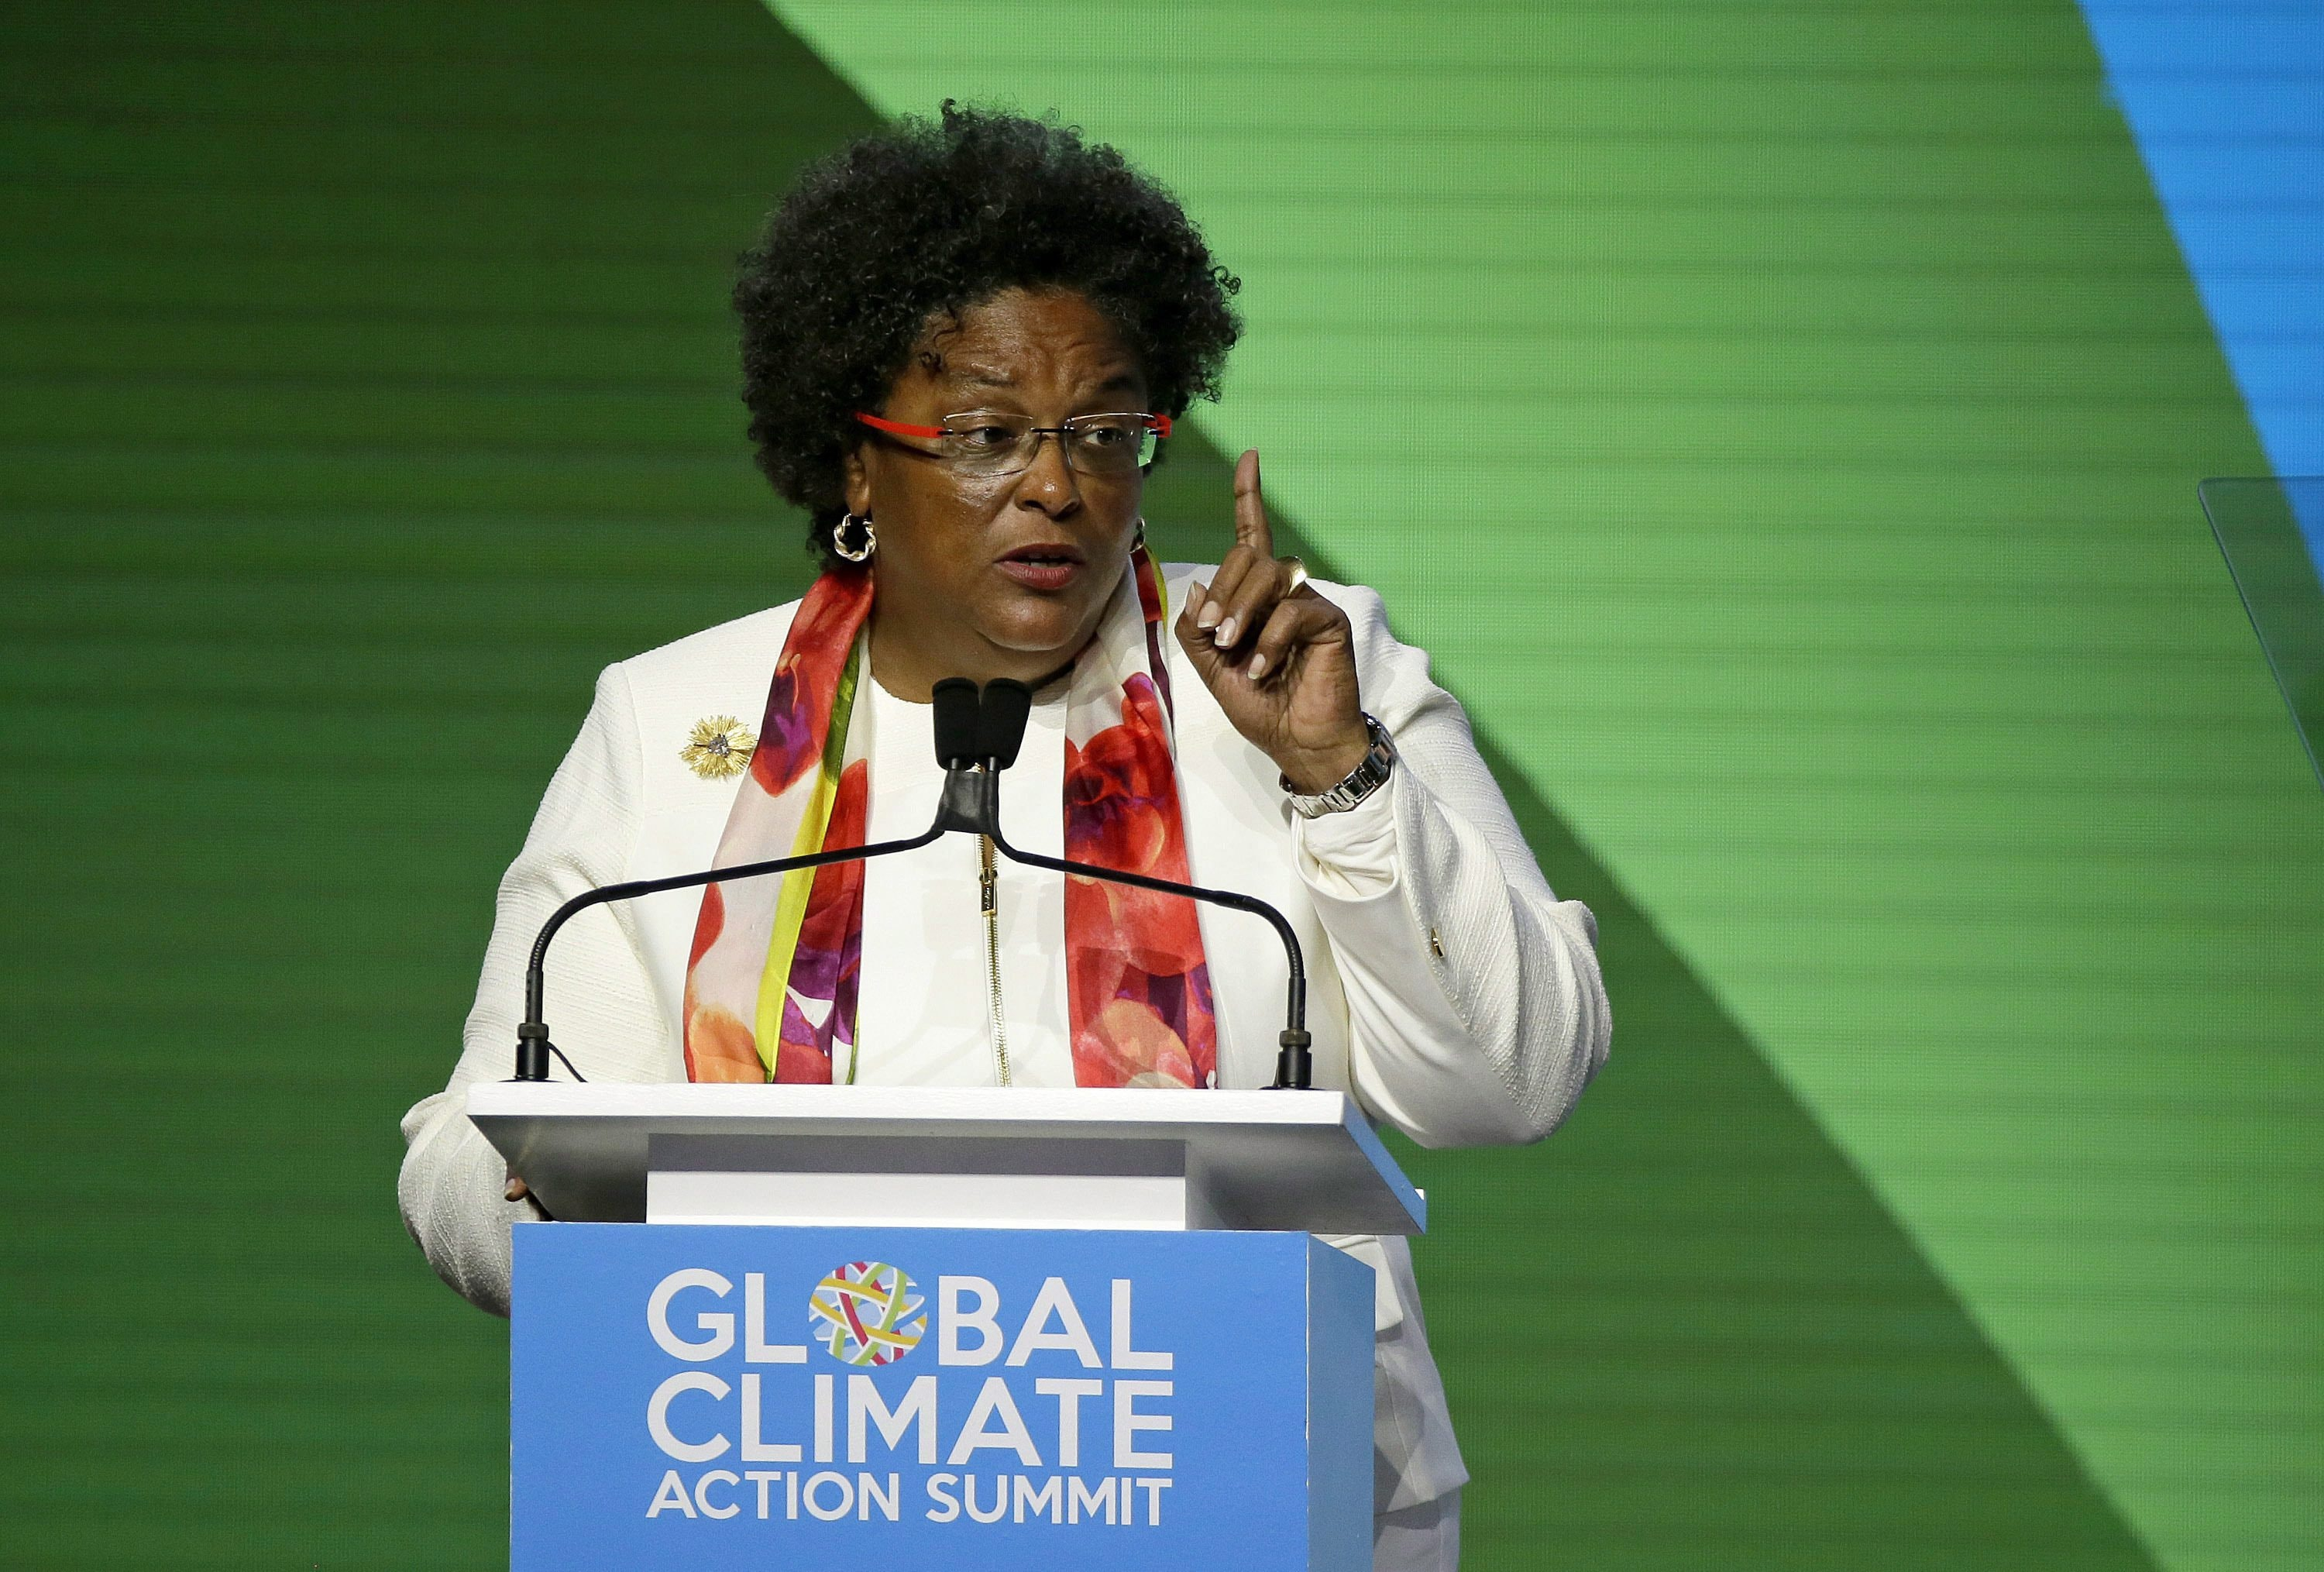 Barbados Prime Minister Mia Mottley speaks during the opening plenary of the Global Action Climate Summit on Sept. 13, 2018, in San Francisco.